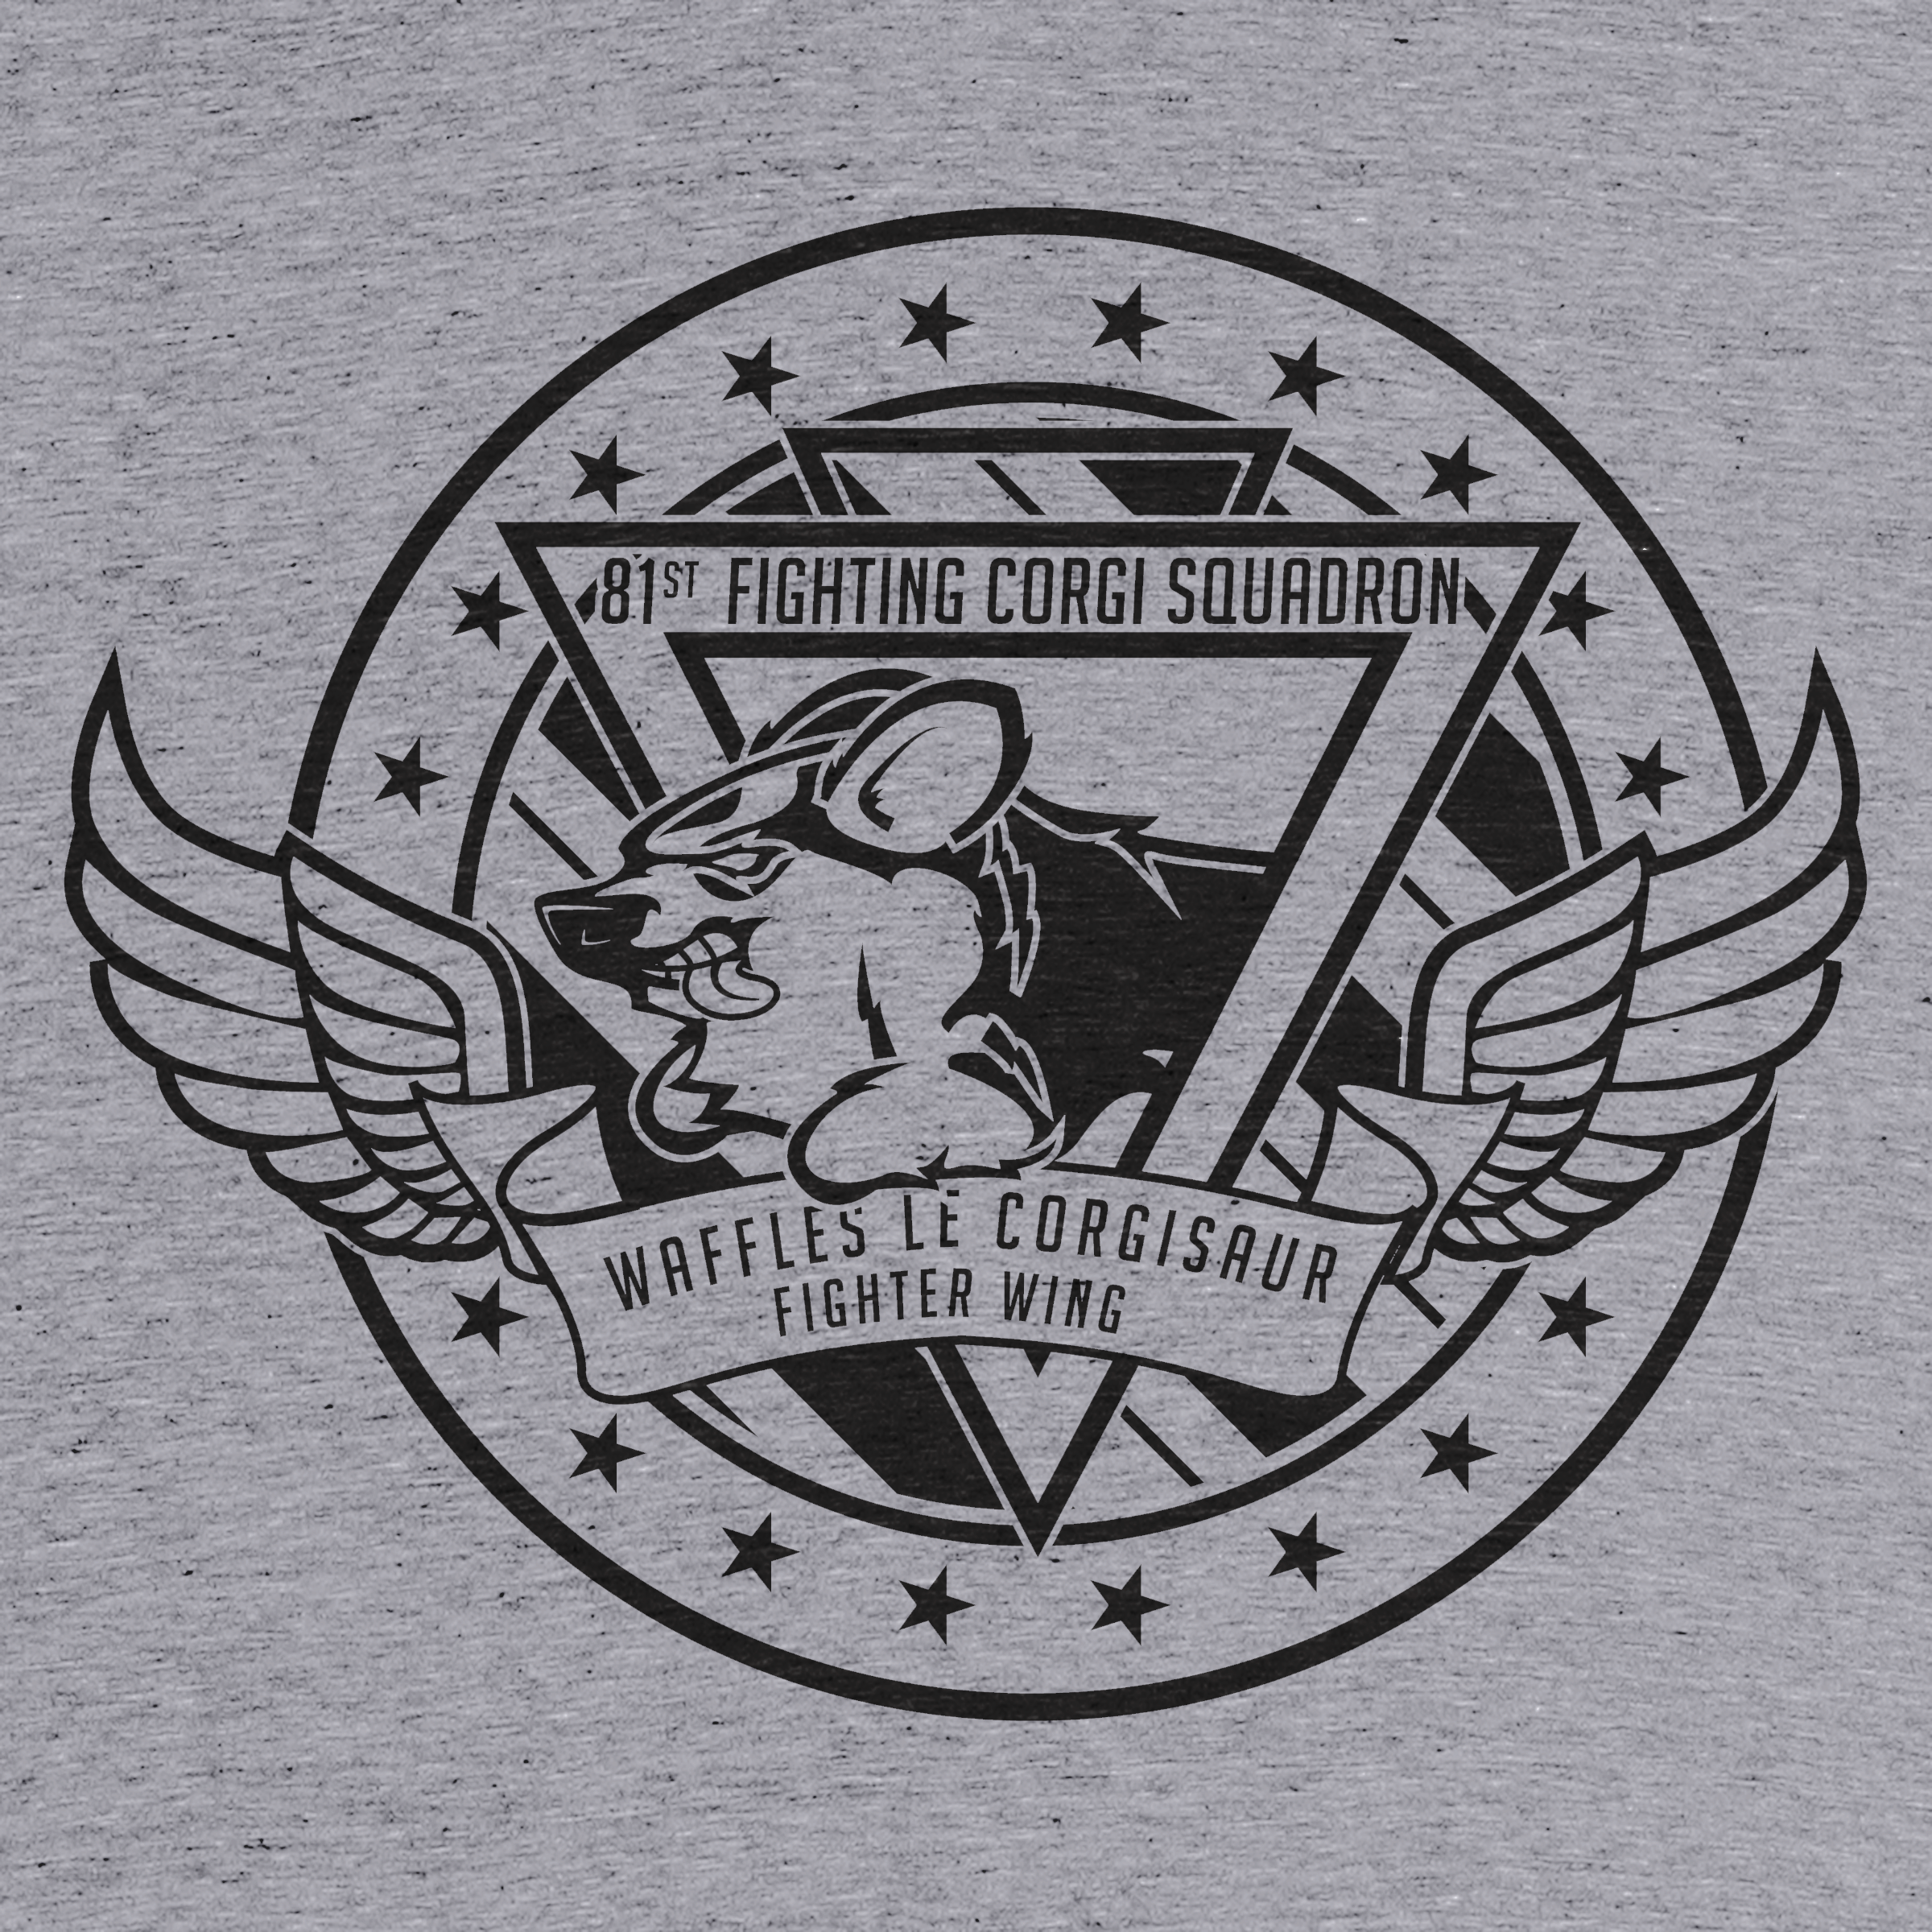 81st Fighting Corgi Squadron